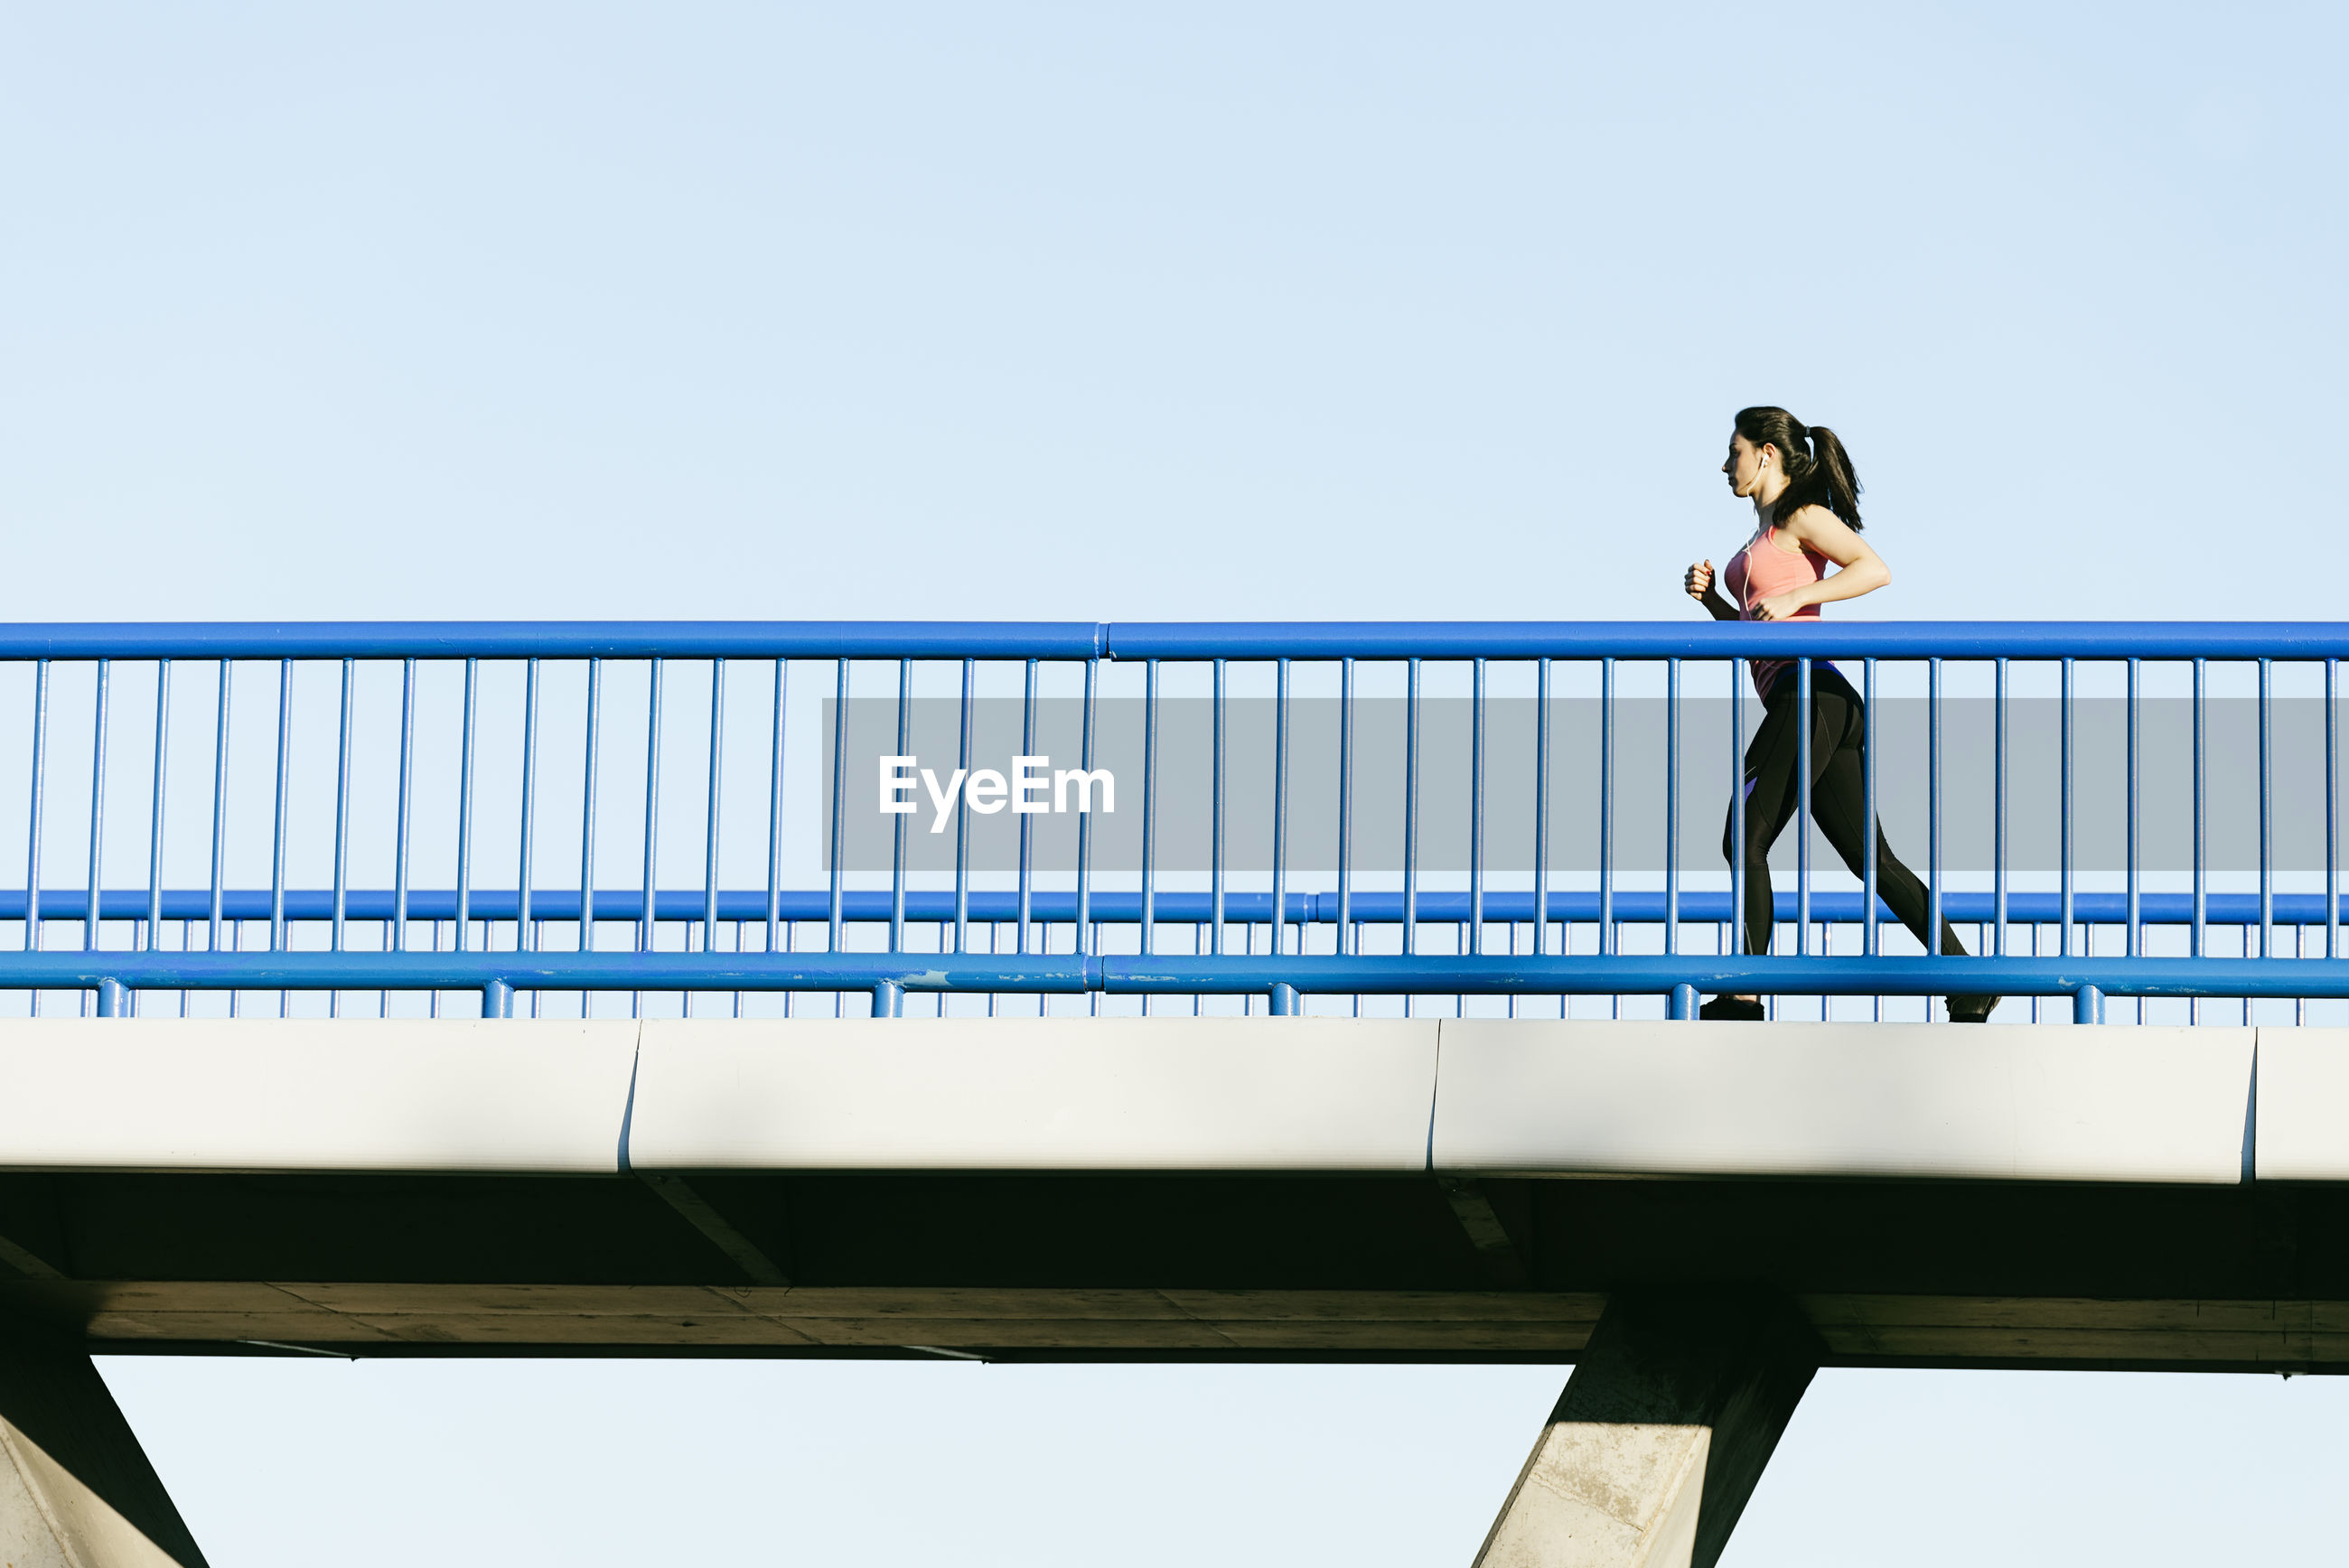 Low angle view of young woman running on footbridge against clear sky